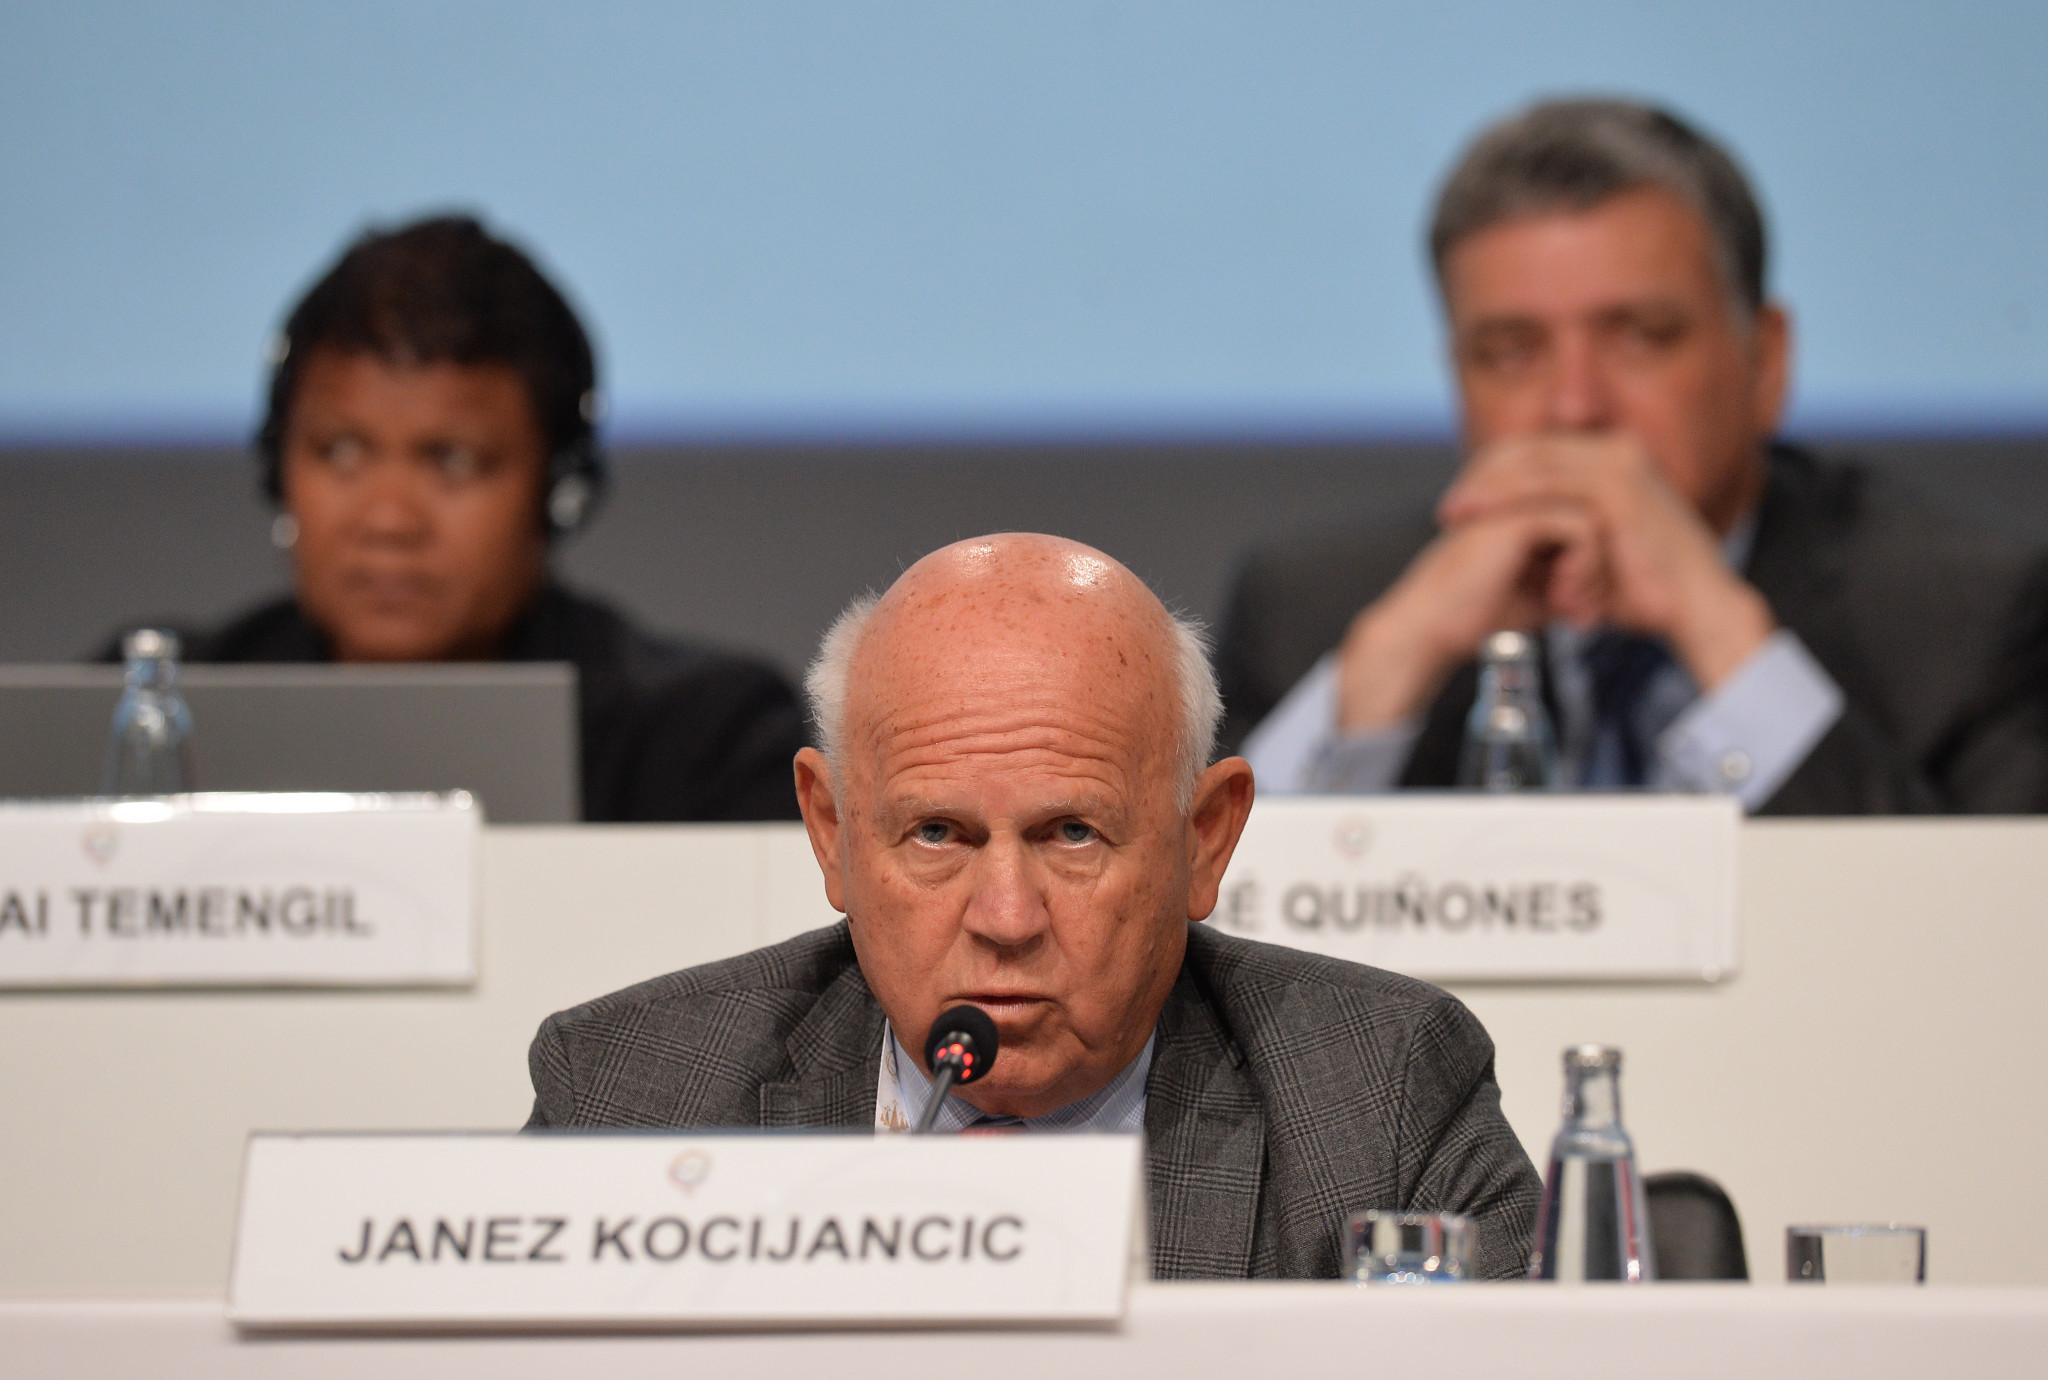 Janez Kocijančič has opposed the IOC decision on Russia ©Getty Images